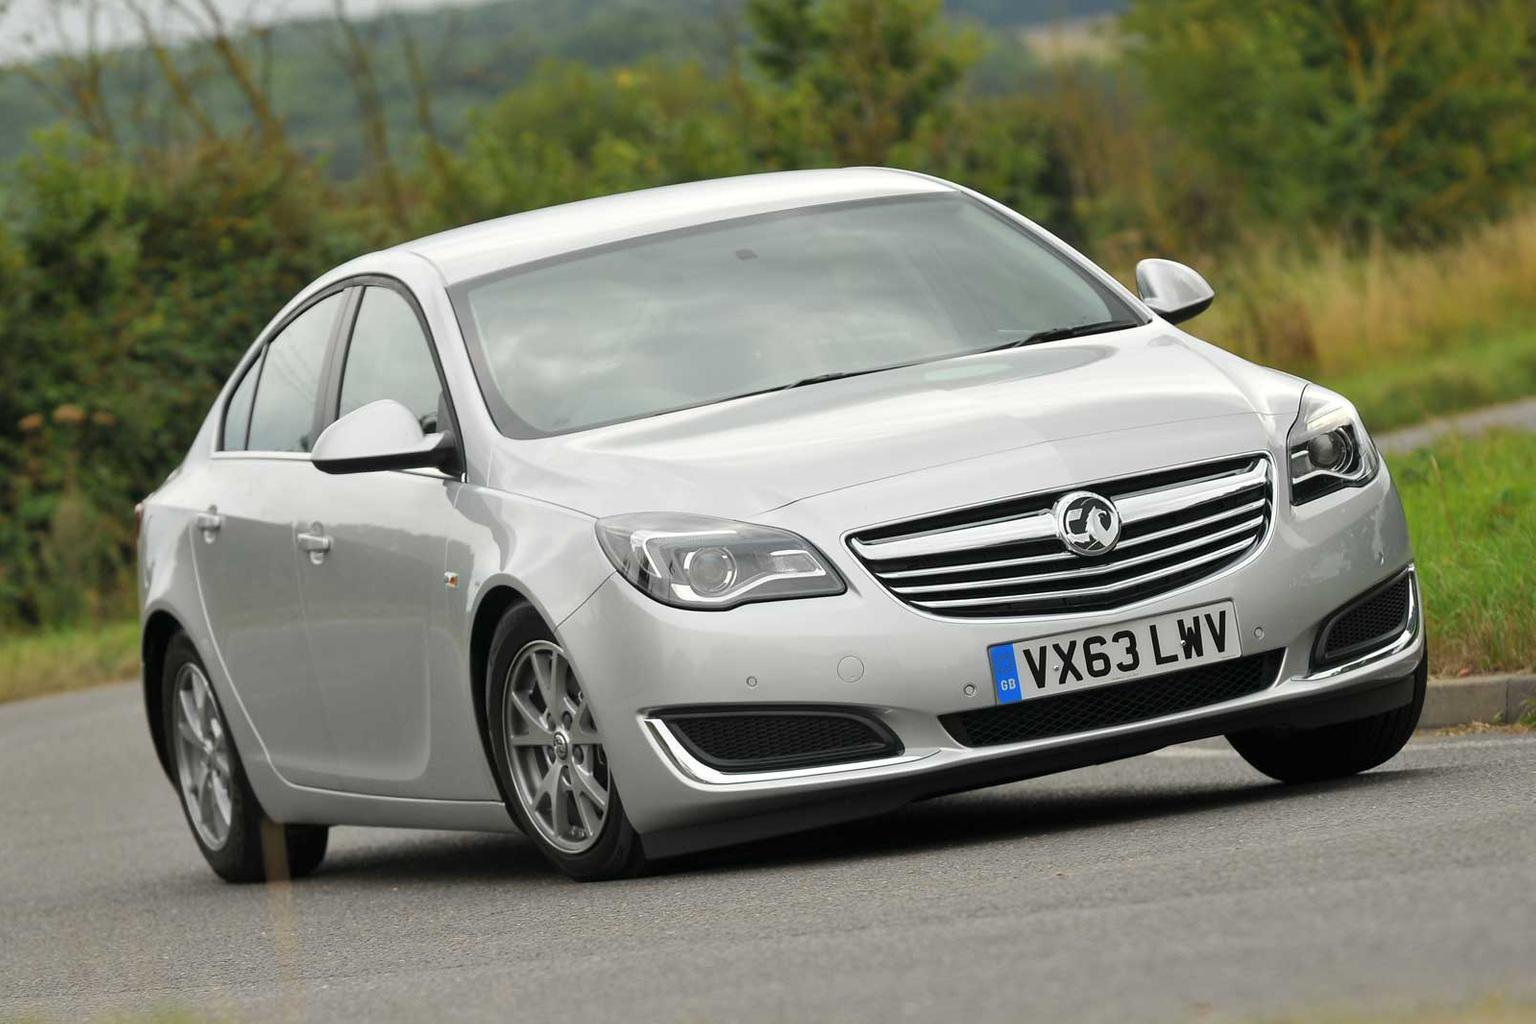 2013 Vauxhall Insignia review | What Car?